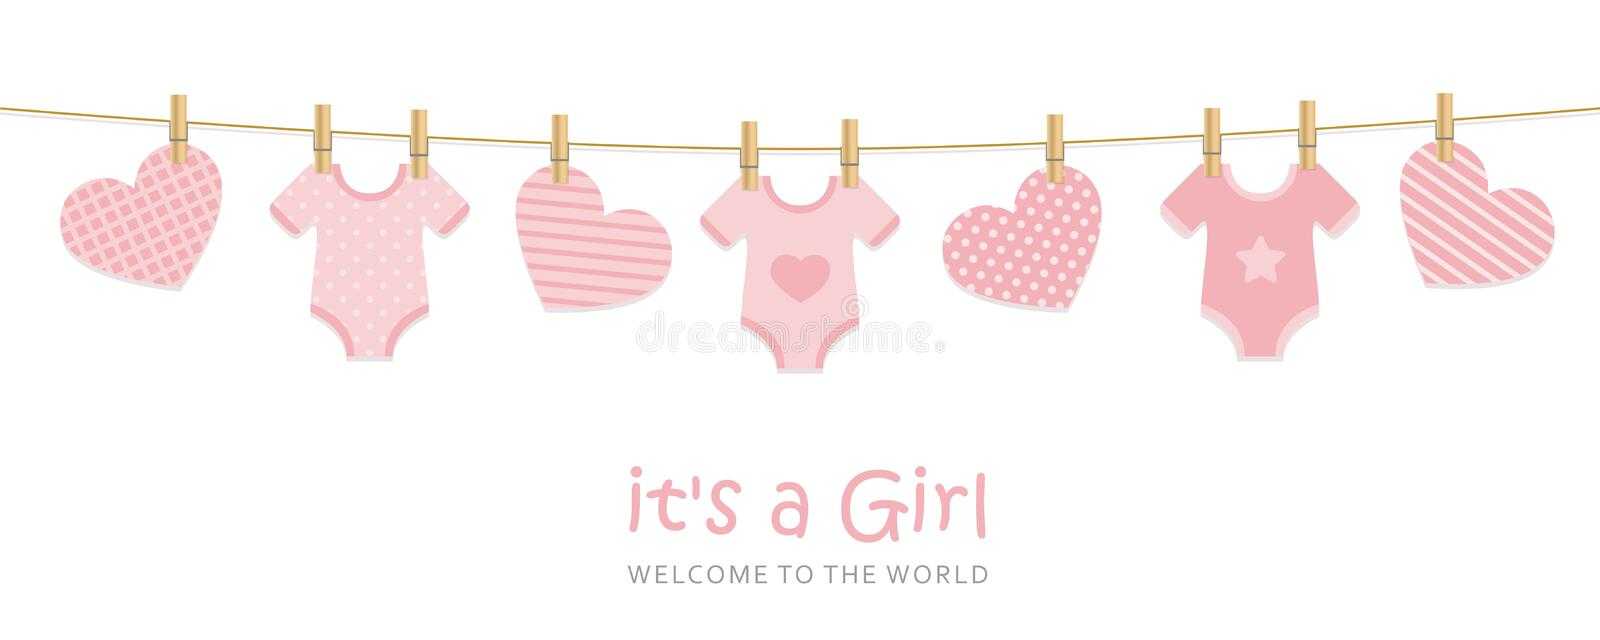 Its a girl welcome greeting card for childbirth with hanging hearts and bodysuits. Vector illustration EPS10 royalty free illustration